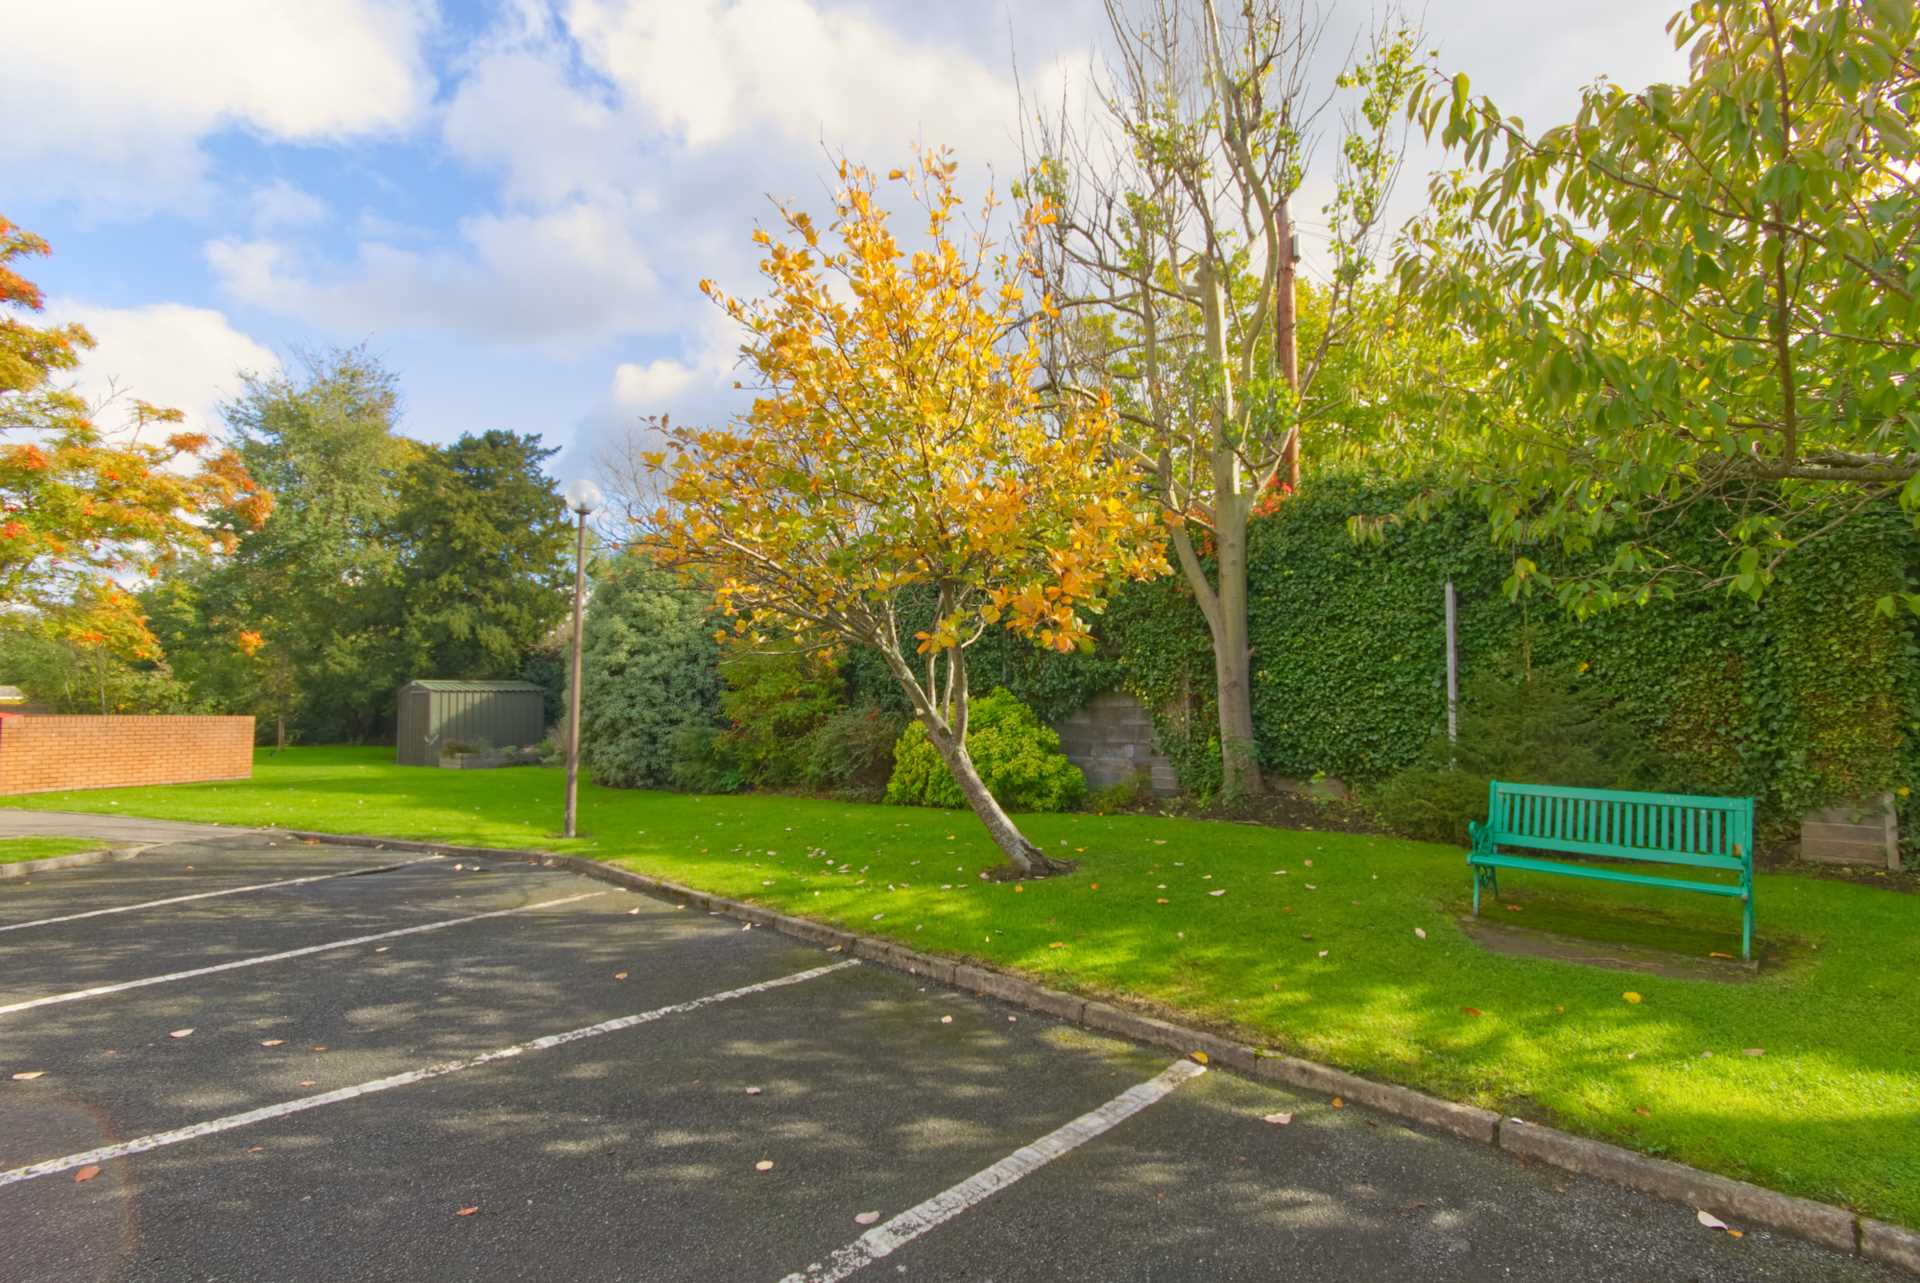 22 Glenanne, Kimmage Road West, Dublin 12, Image 13